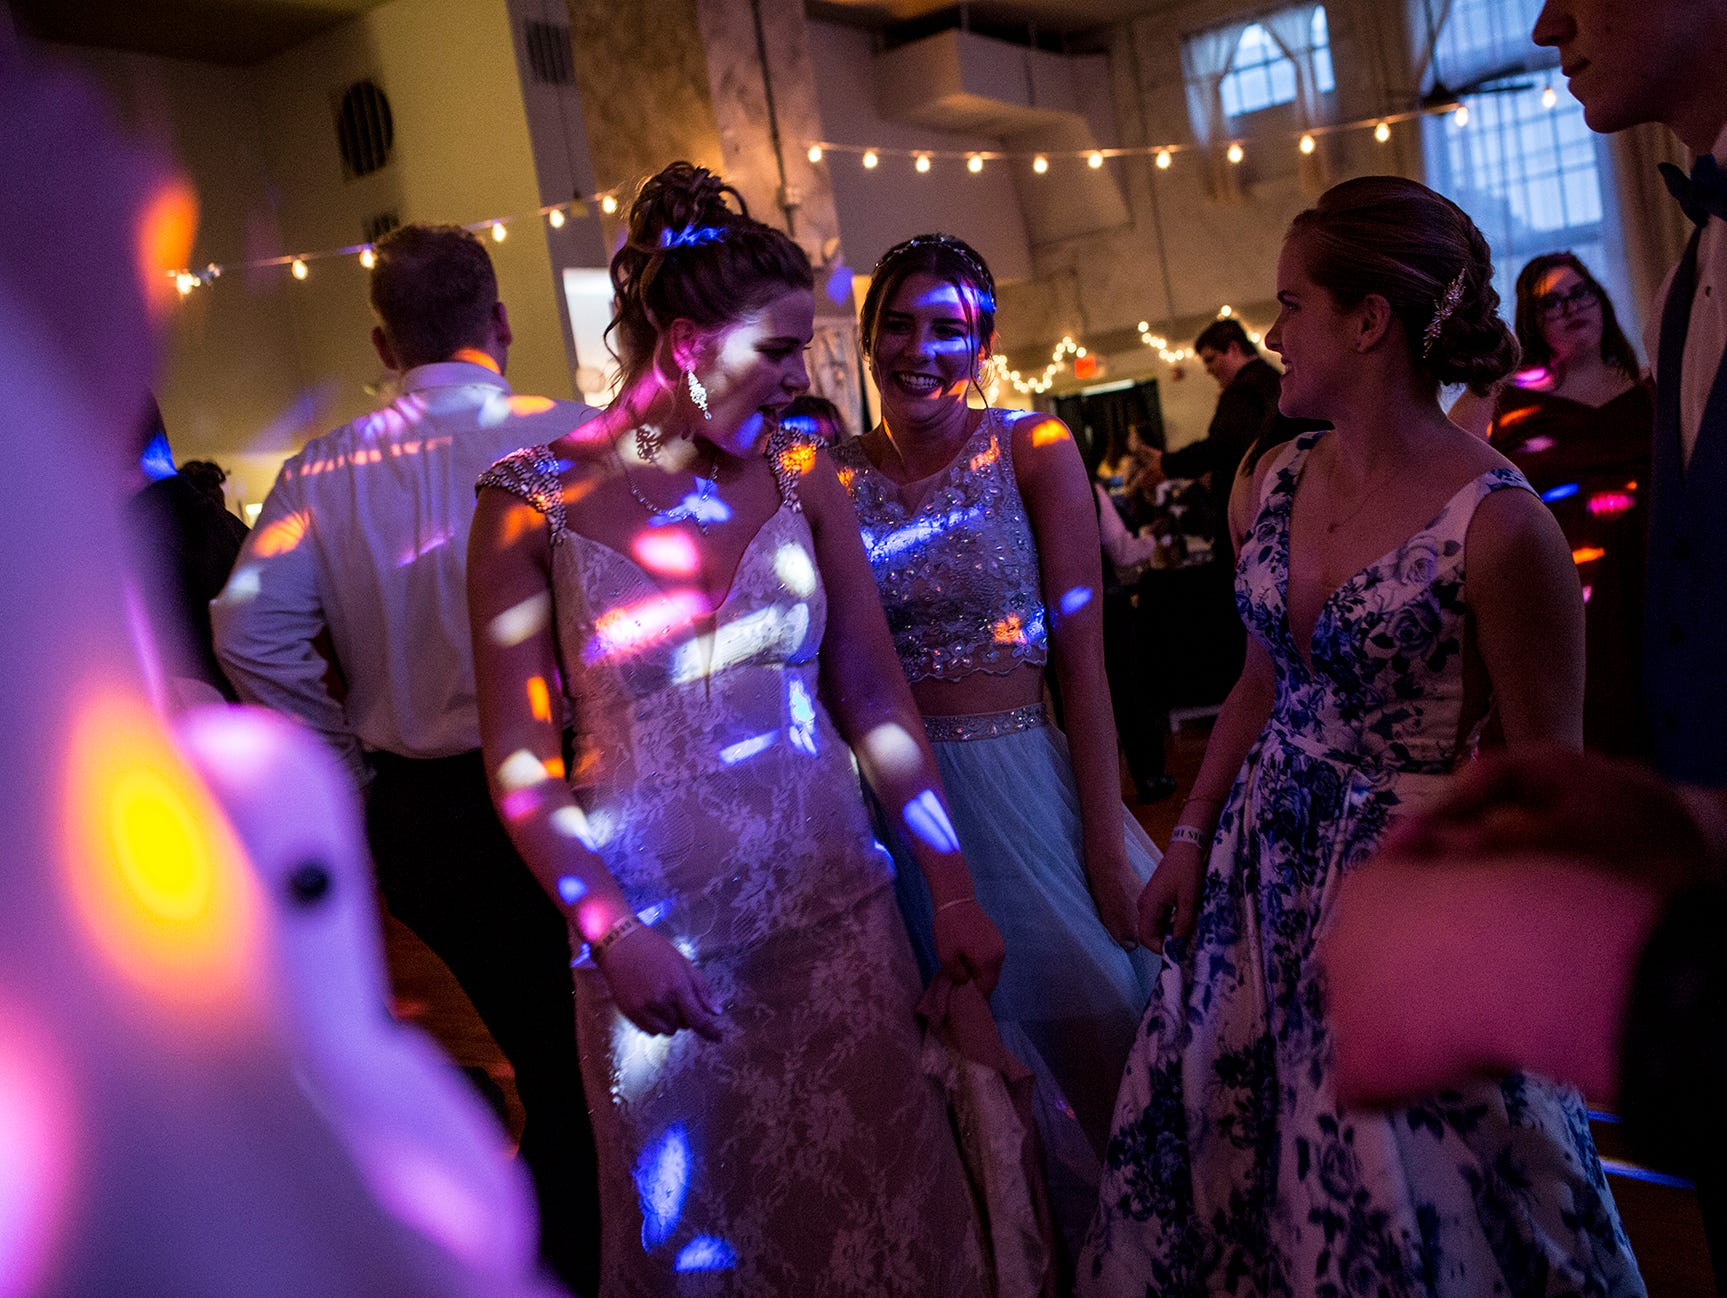 Newark High School students Courtney Brown and Hailey Sutyak enjoy their prom at the Skylight in downtown Newark Saturday evening.